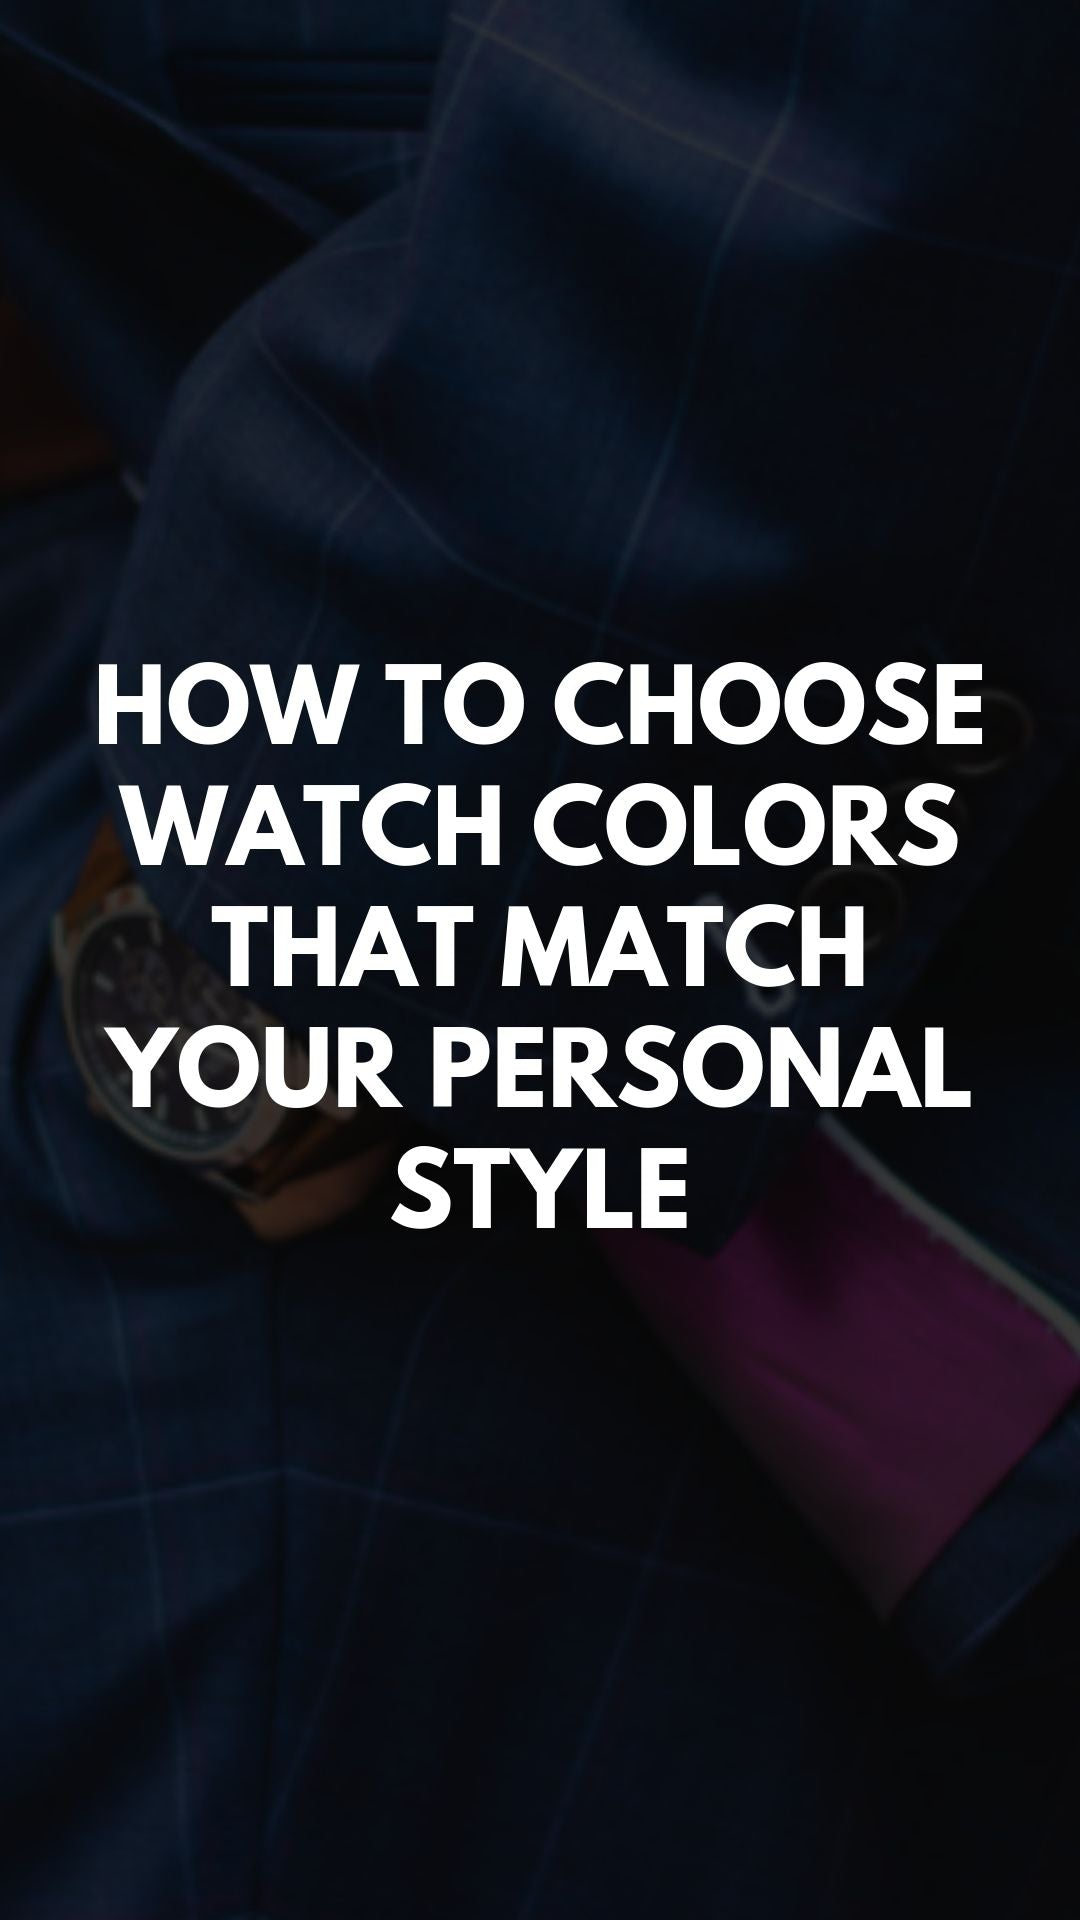 How to Choose Watch Colors That Match Your Personal Style